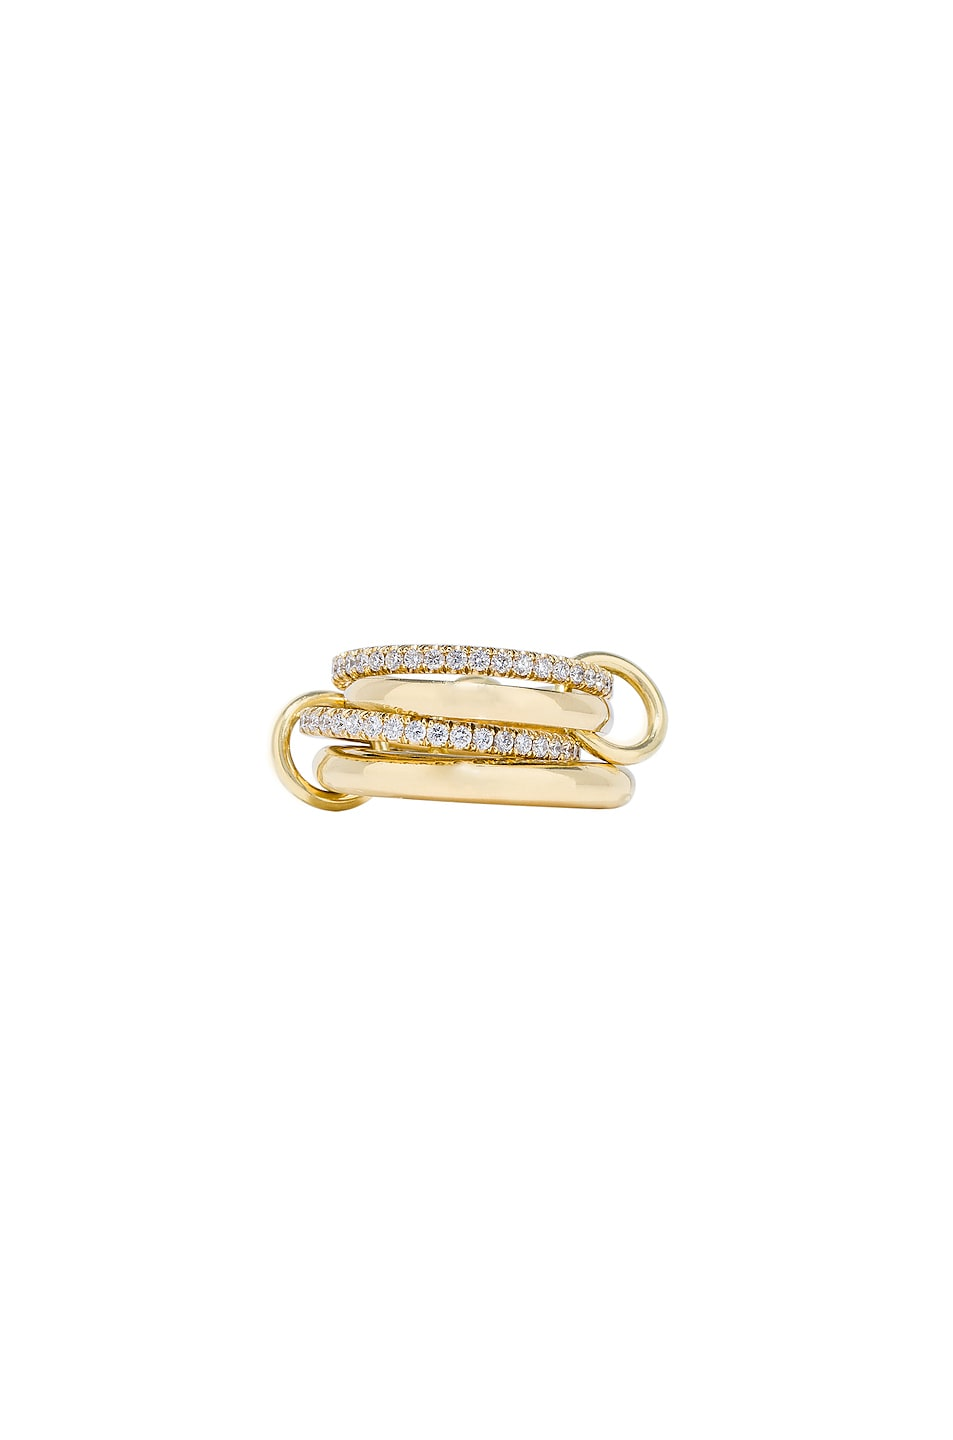 Image 1 of Spinelli Kilcollin Cancer YG Ring in 18K Yellow Gold